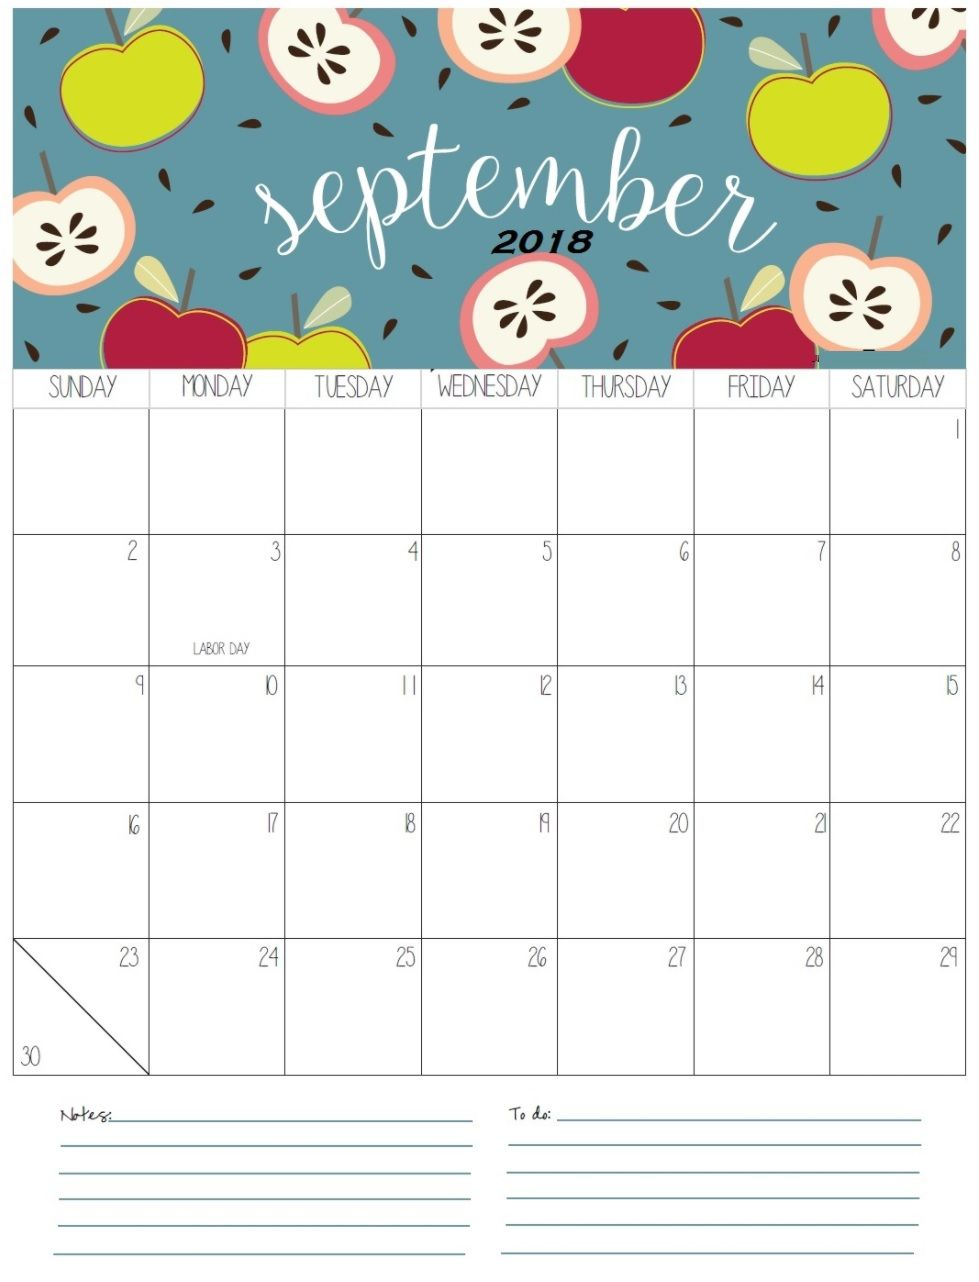 Printable September 2018 Holidays Calendar | Calendar 2018